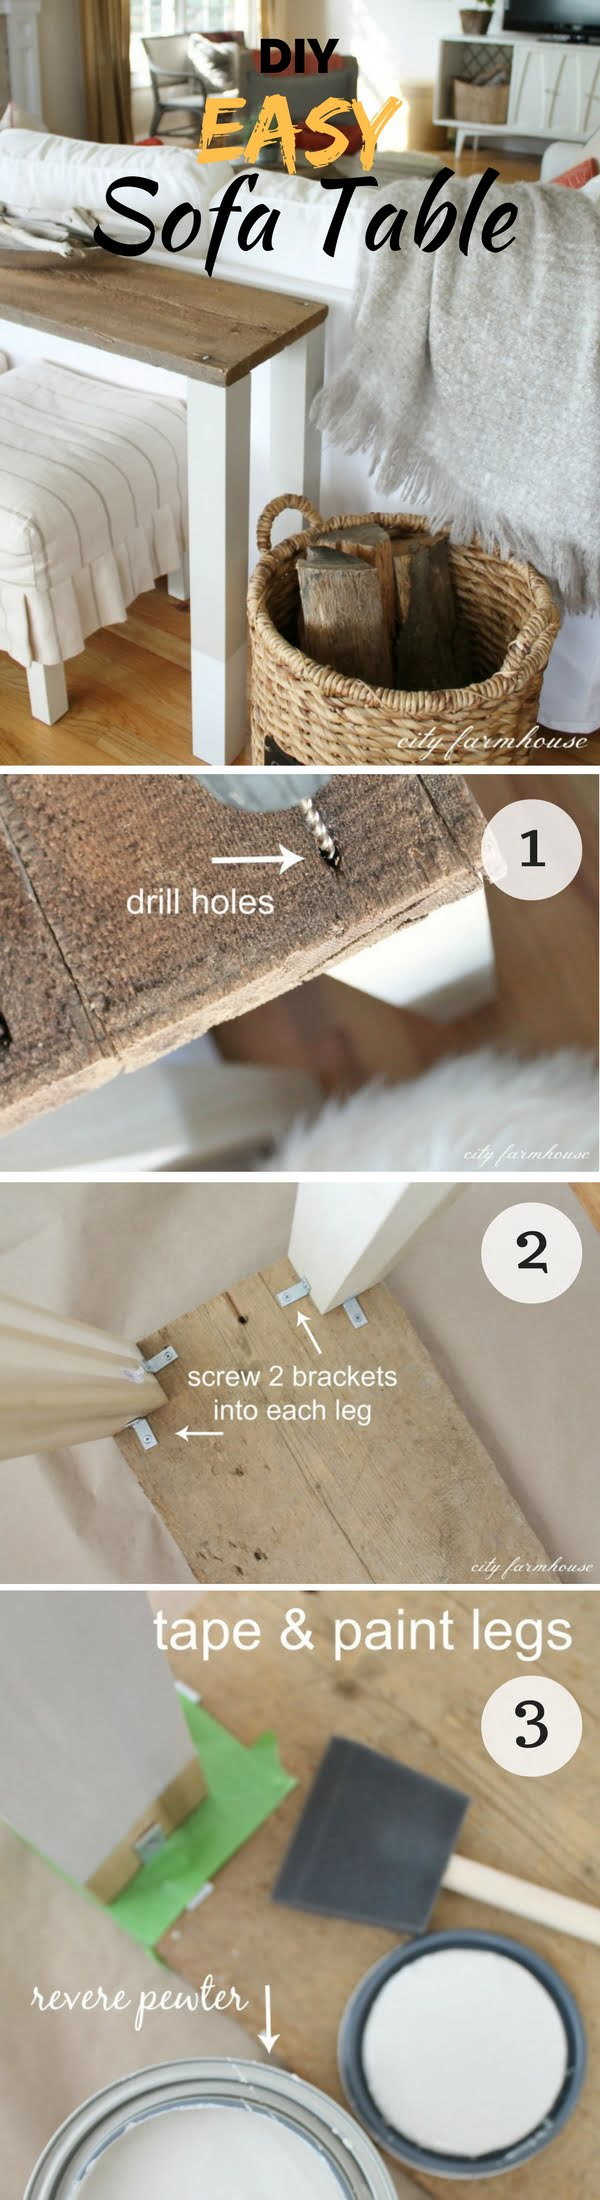 Check out how to make this easy DIY sofa table form reclaimed wood